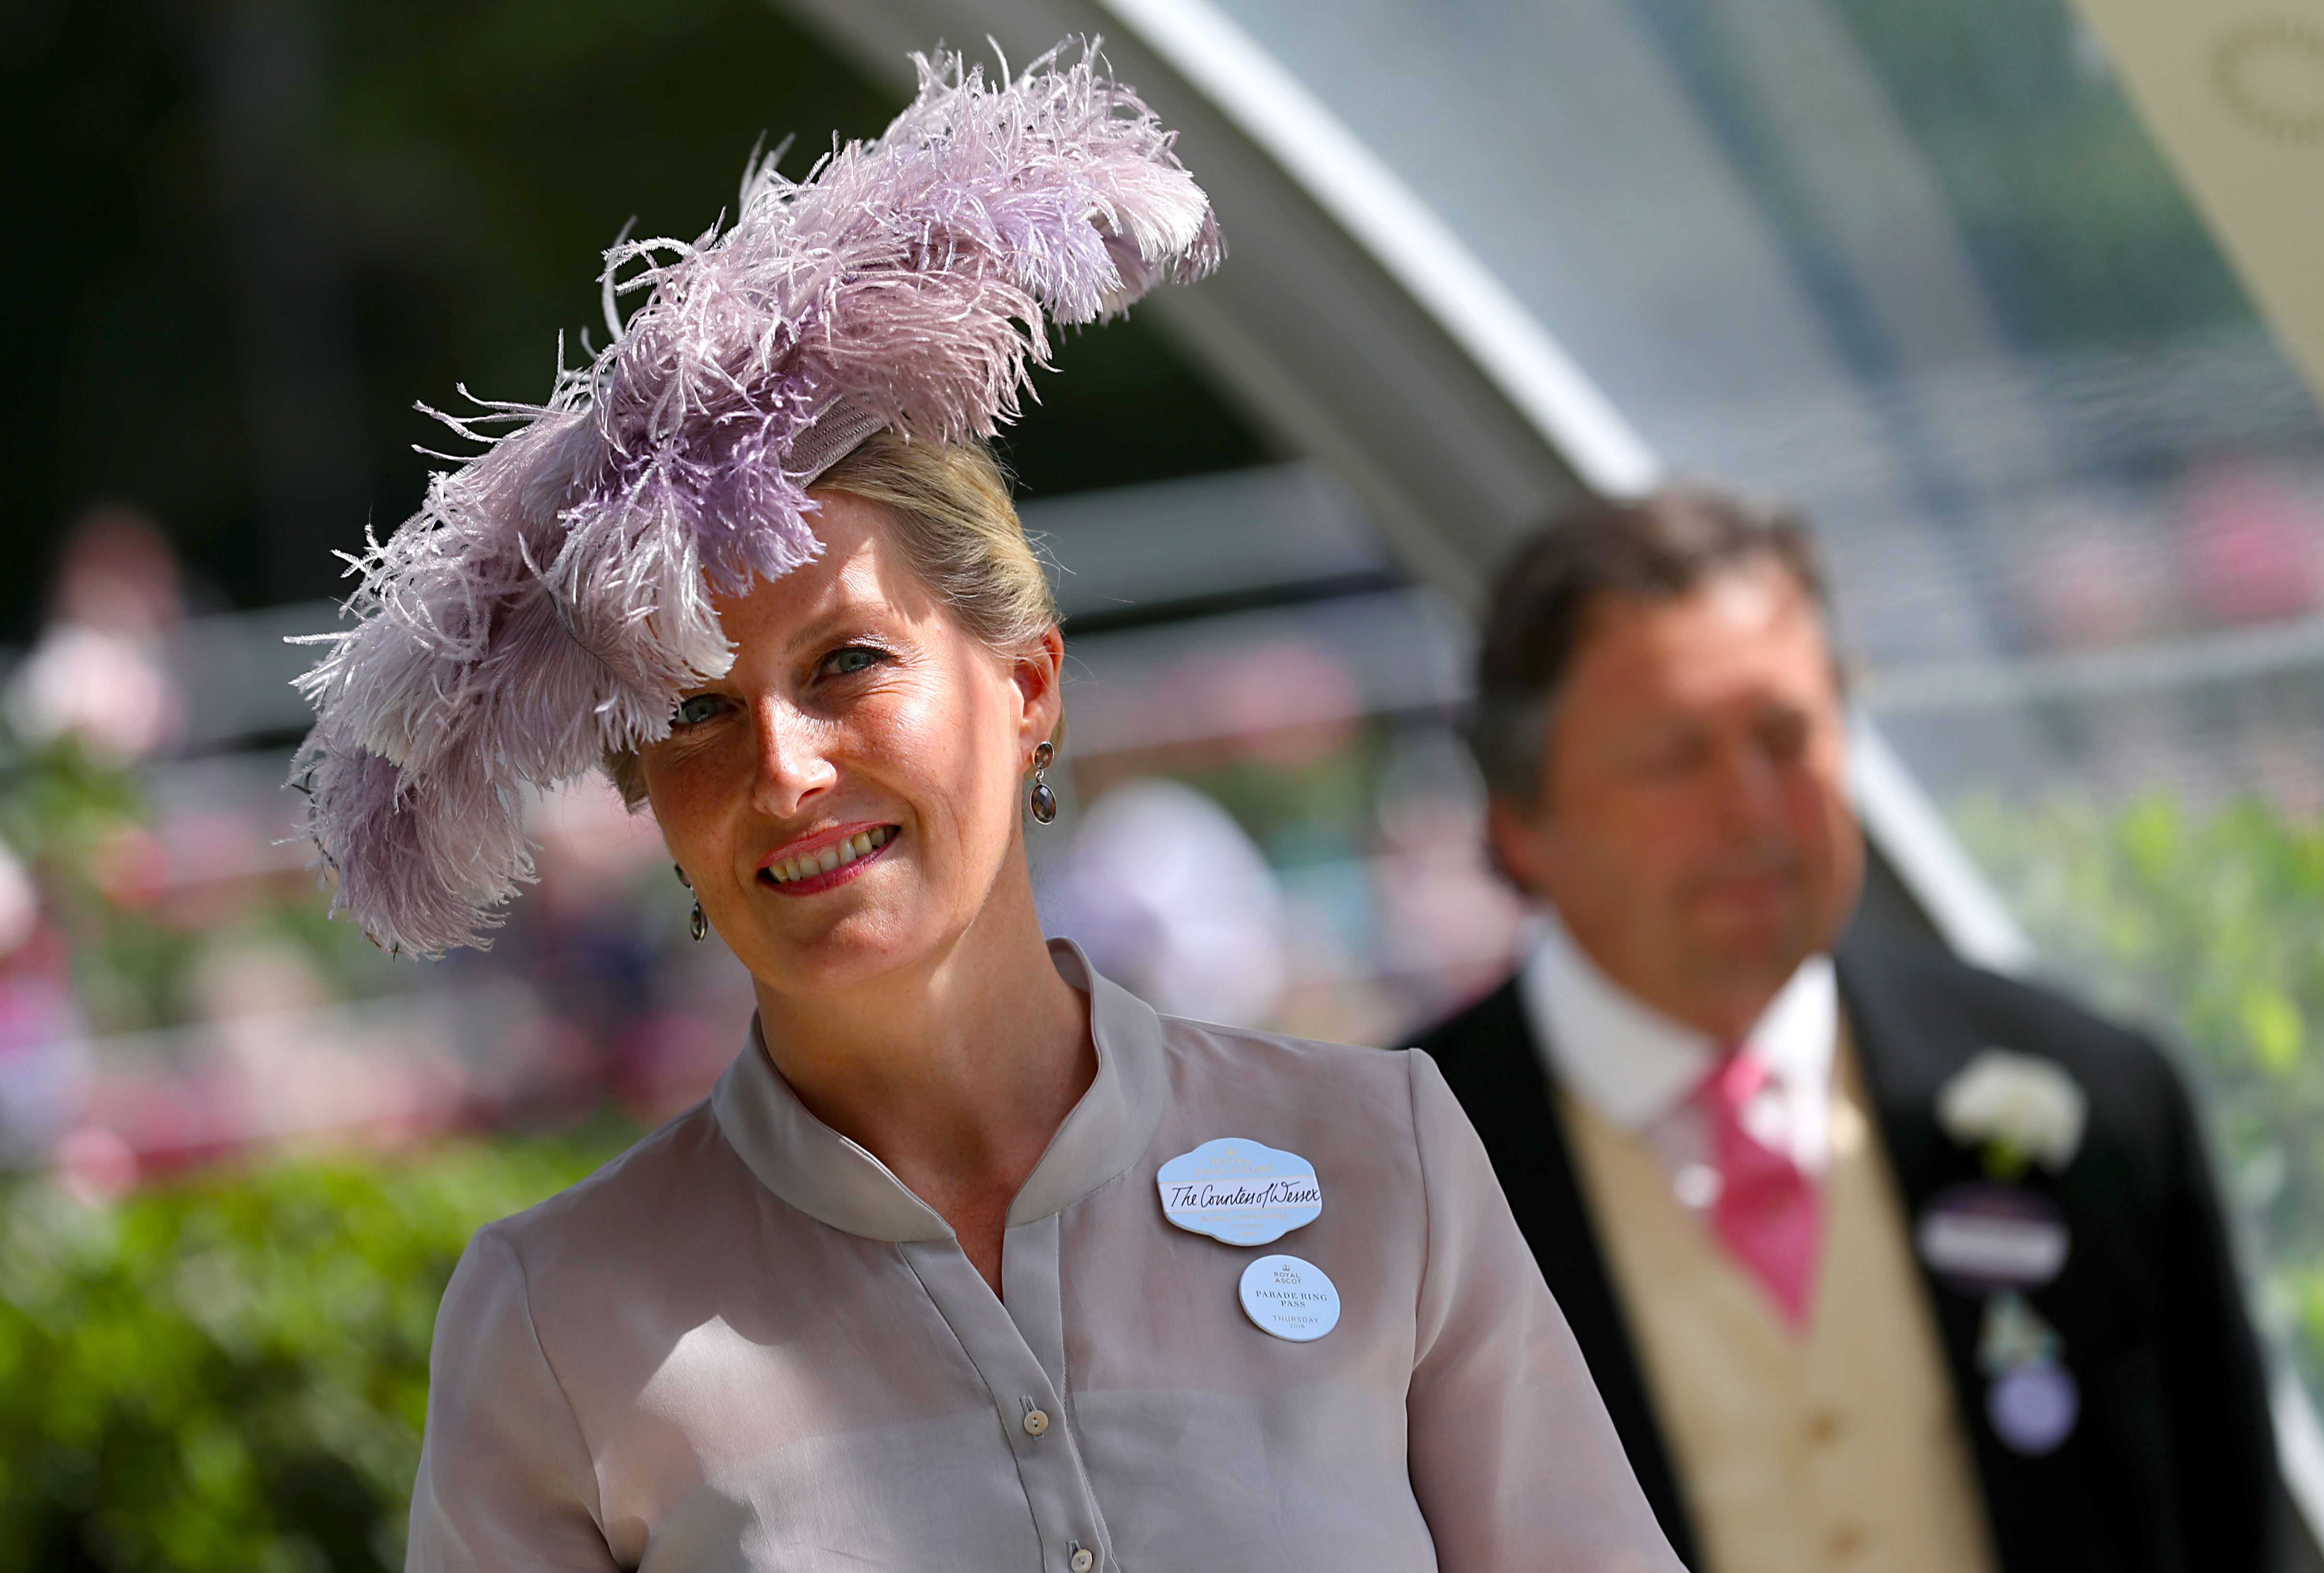 Countess of Wessex at Ascot